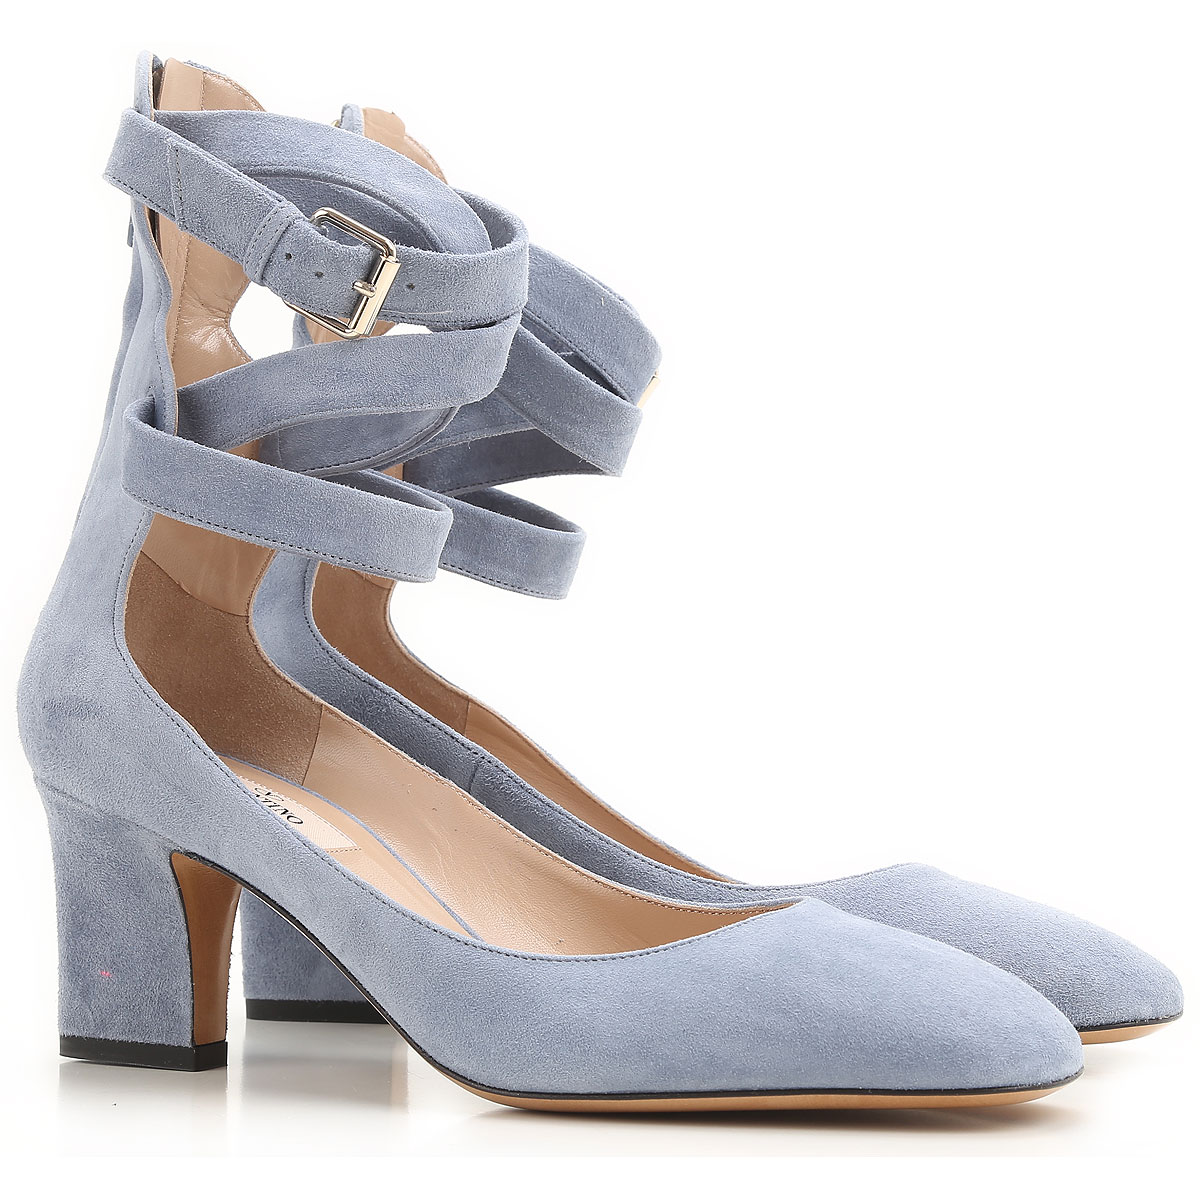 Valentino Garavani Pumps & High Heels for Women On Sale in Outlet, Dusty Blue, Suede leather, 2019, 10 6 7 9 9.5